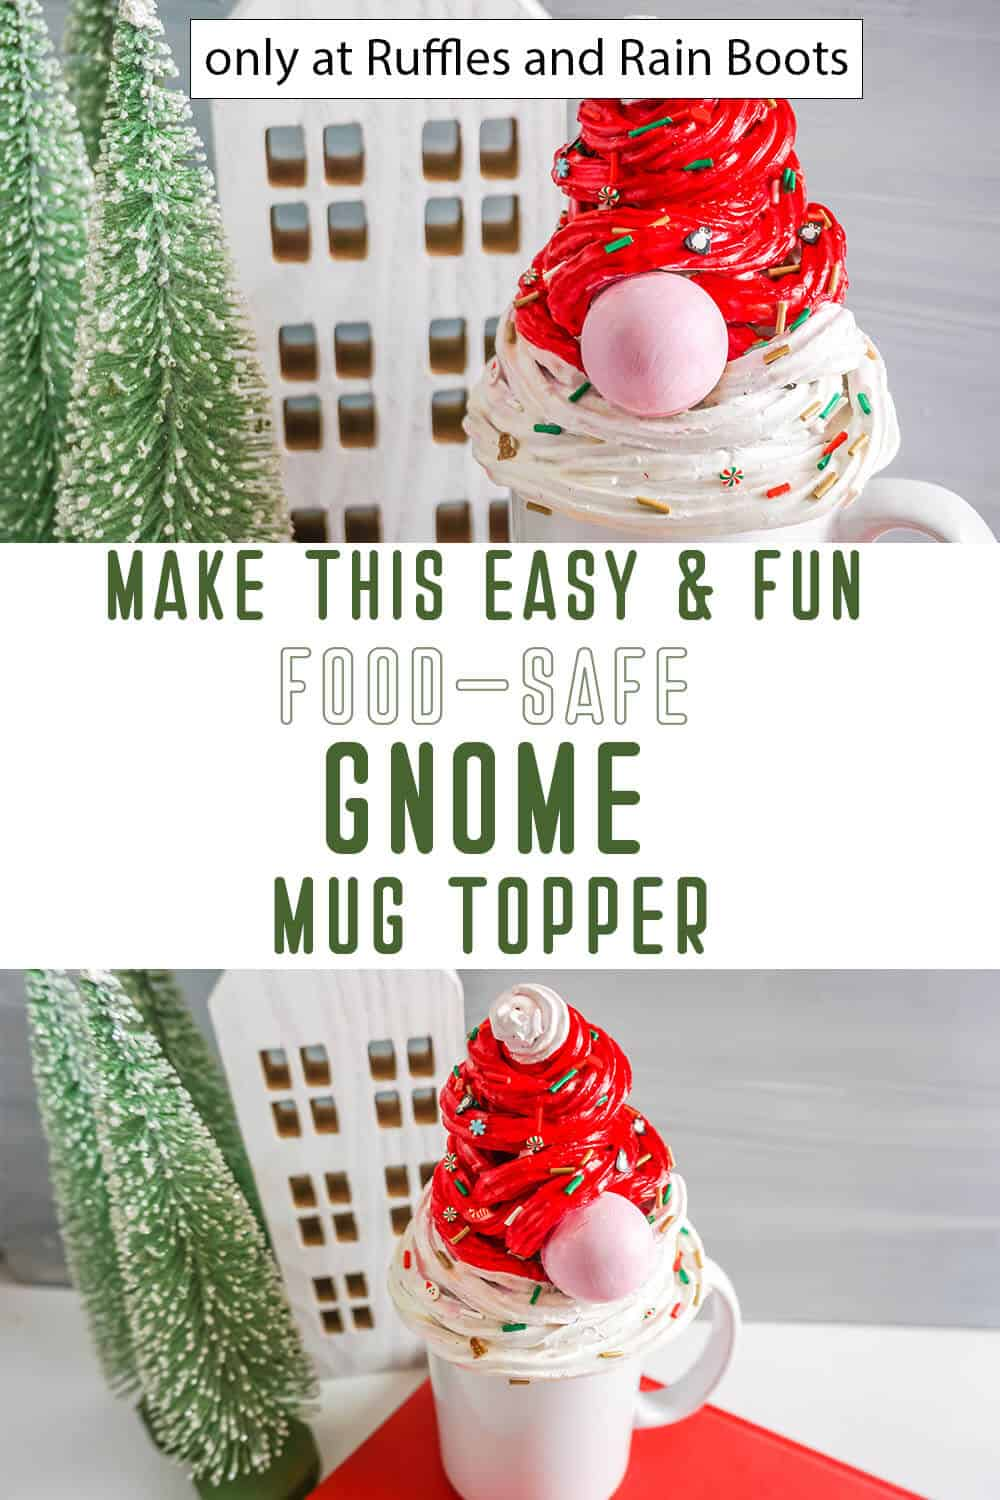 photo collage of mug topper gnome diy craft with text which reads make this easy & fun food-safe gnome mug topper